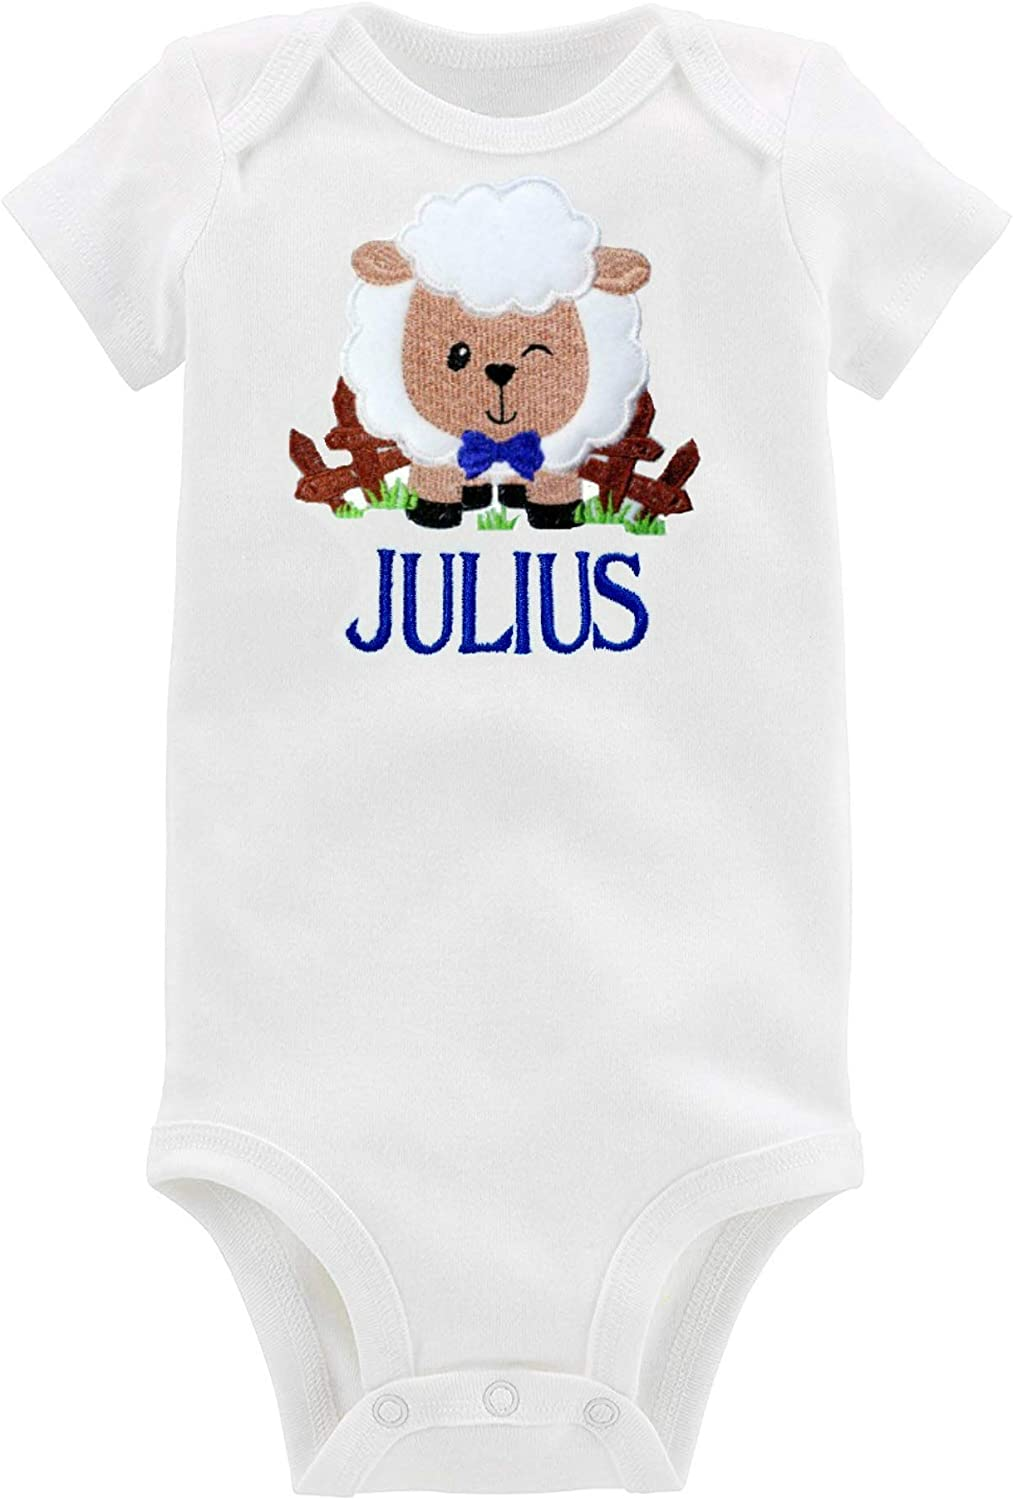 Personalised babies and todlers all in one outfit onsie any name 6 months-3 year